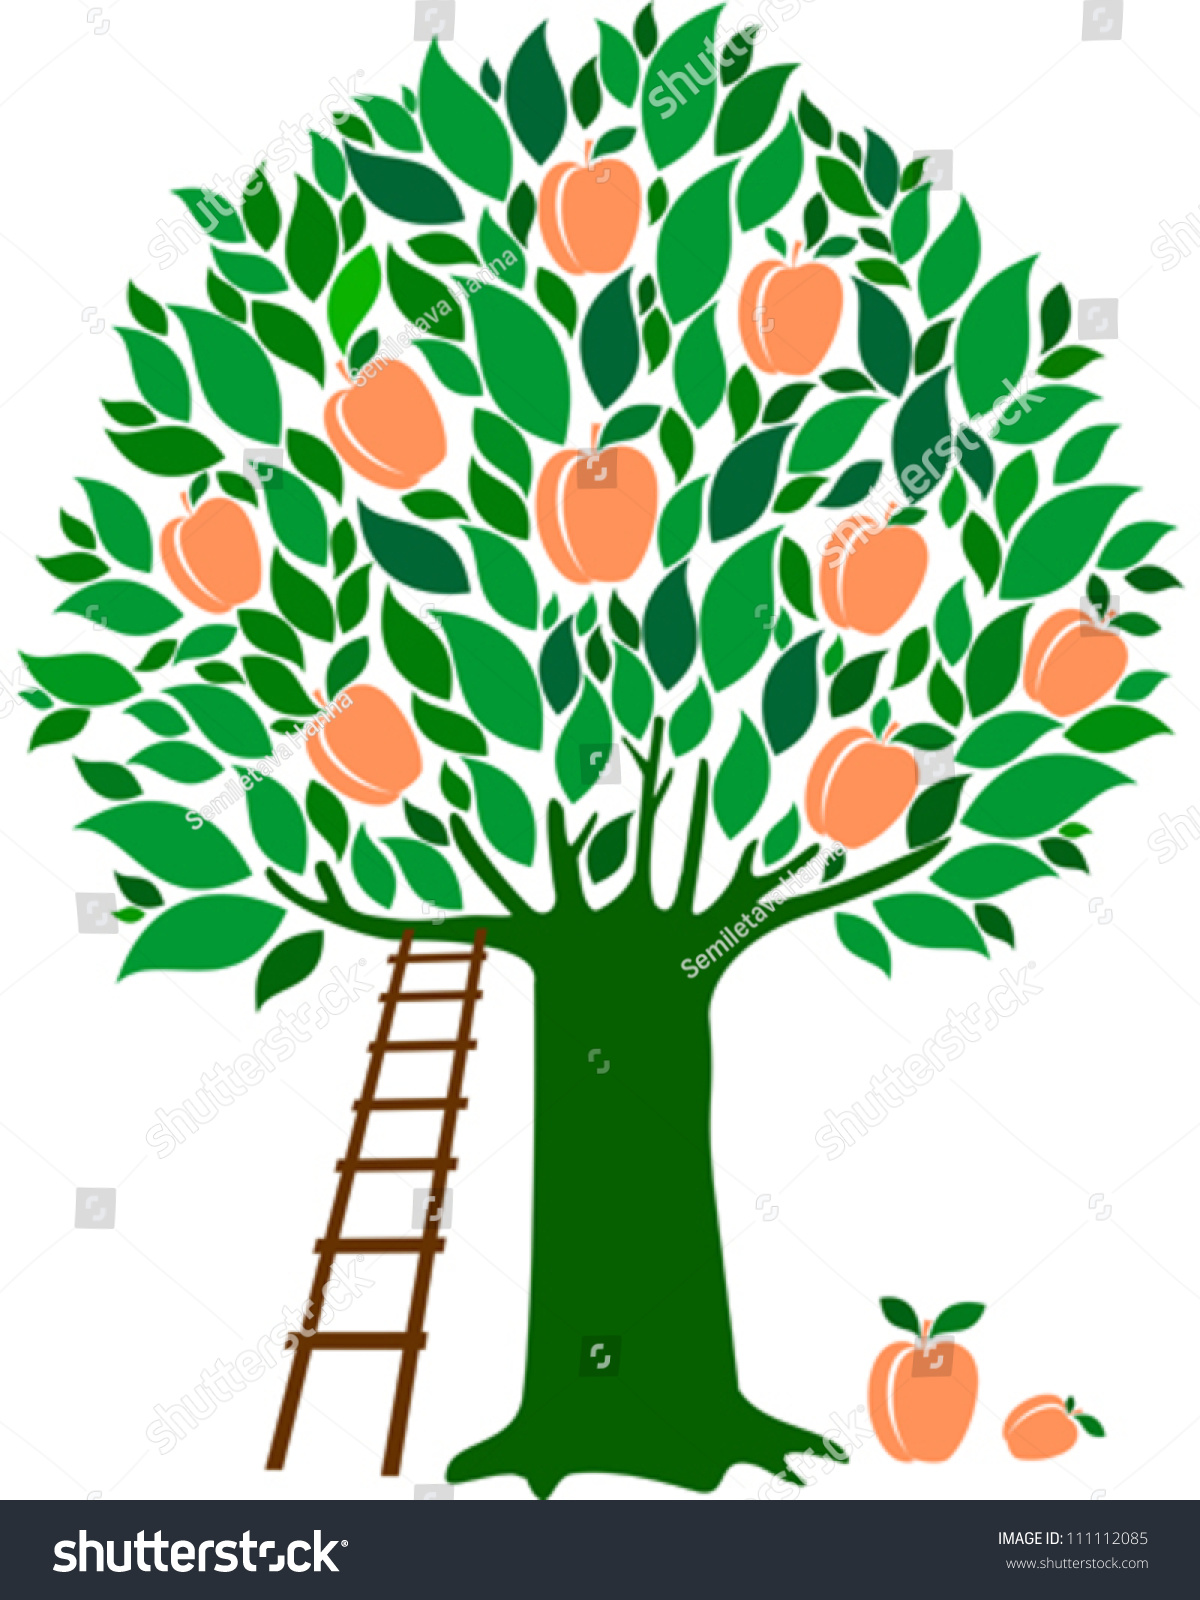 Peach tree isolated on white background stock vector for Peach tree designs